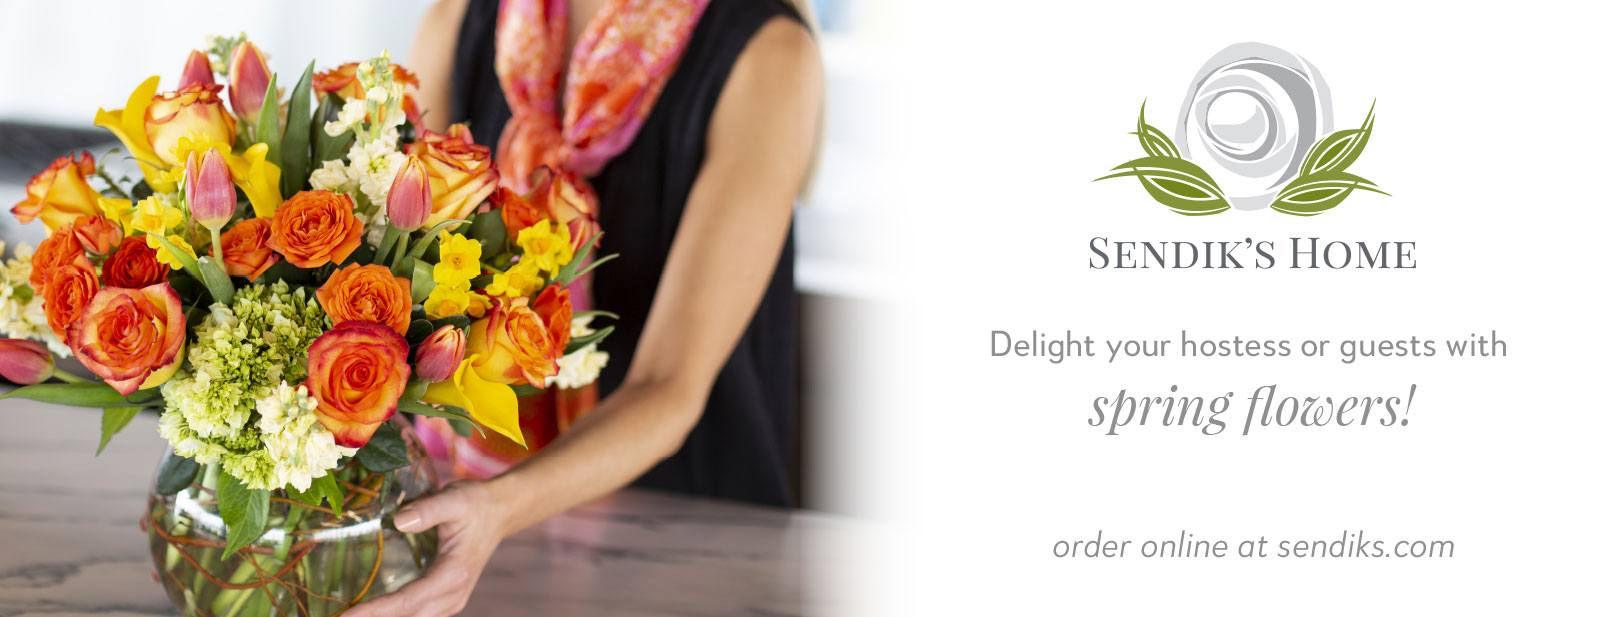 Delight your hostess or guests with spring flowers!